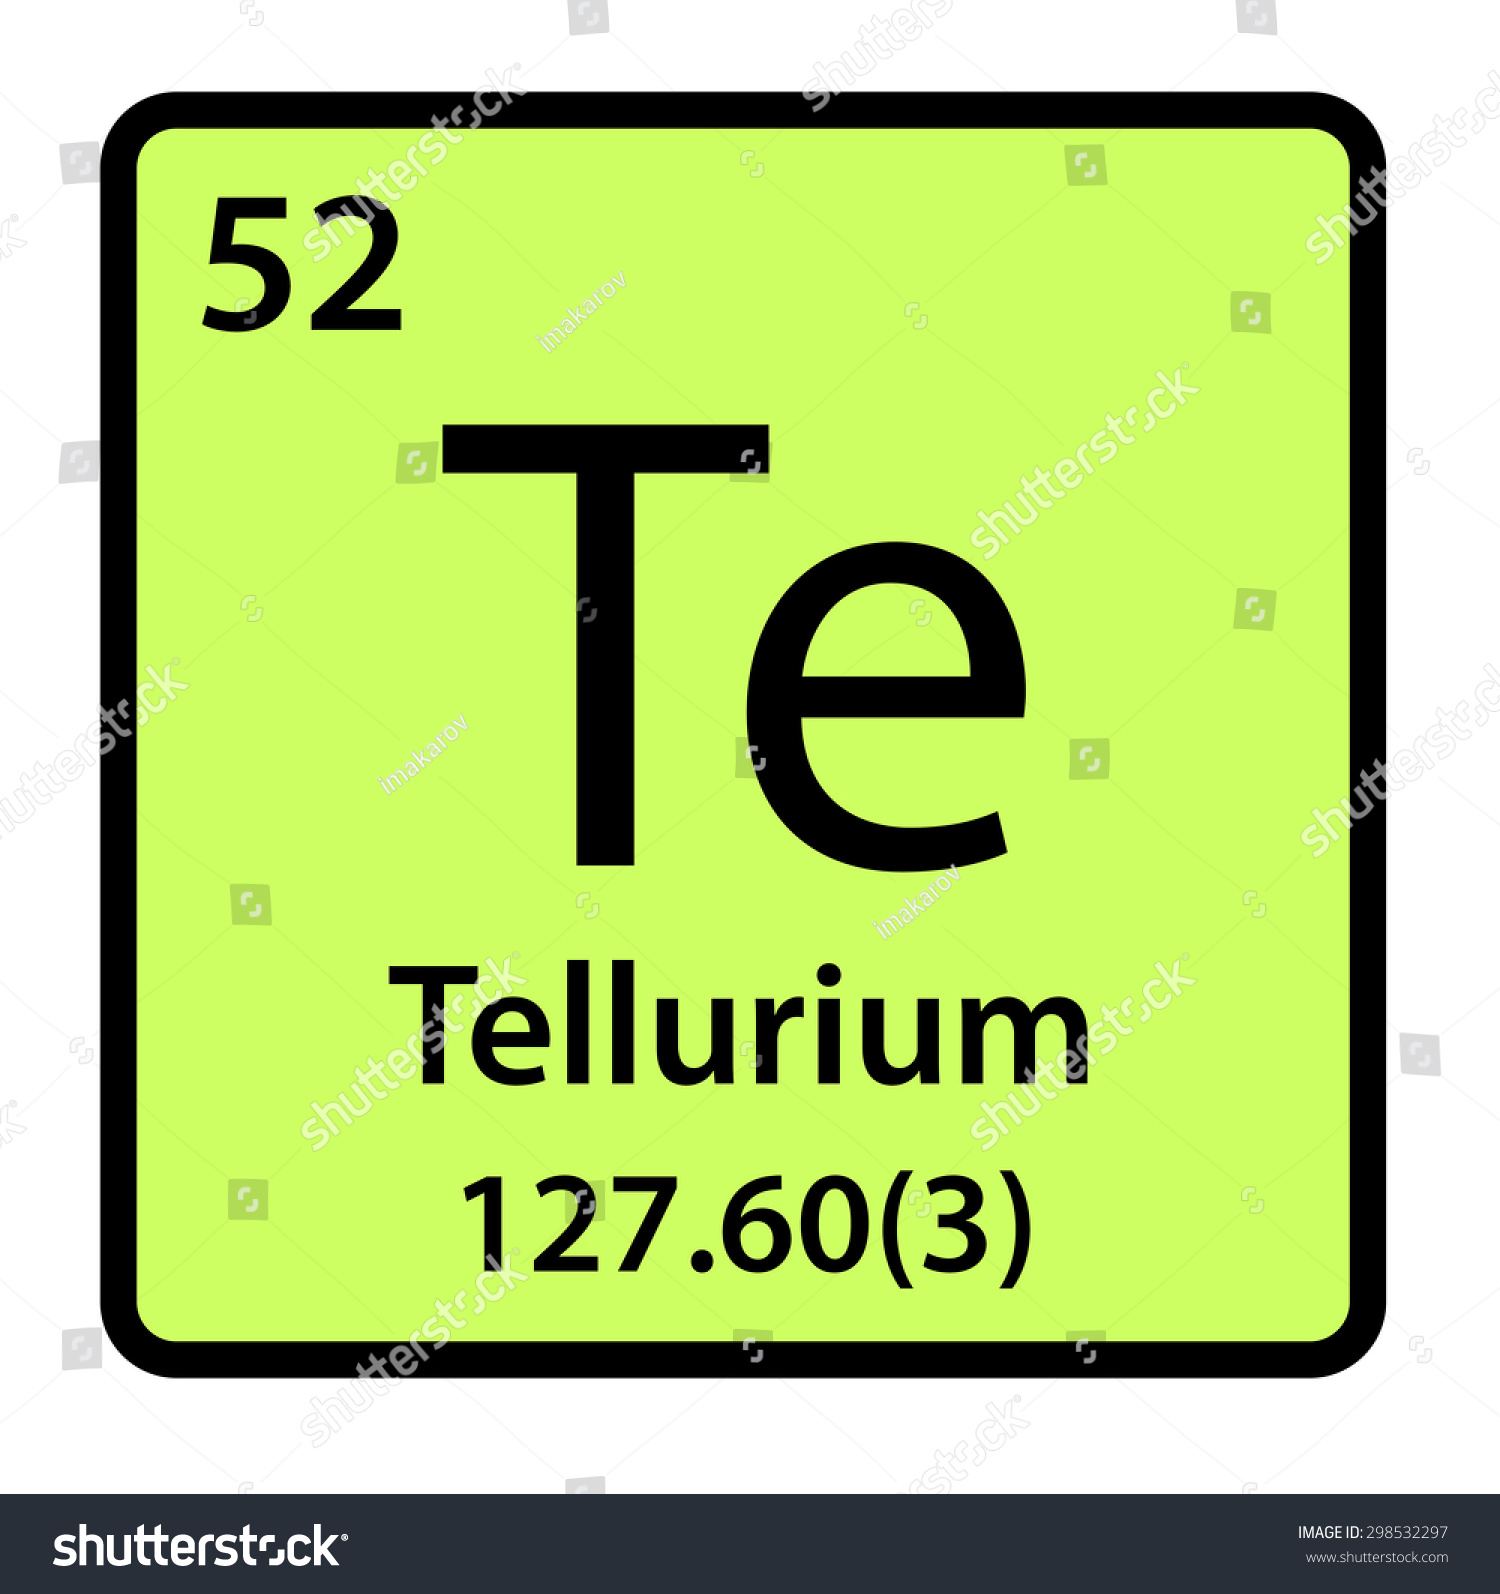 Tellurium on the periodic table images periodic table images tellurium on the periodic table images periodic table images tellurium periodic table aviongoldcorp element tellurium periodic gamestrikefo Choice Image